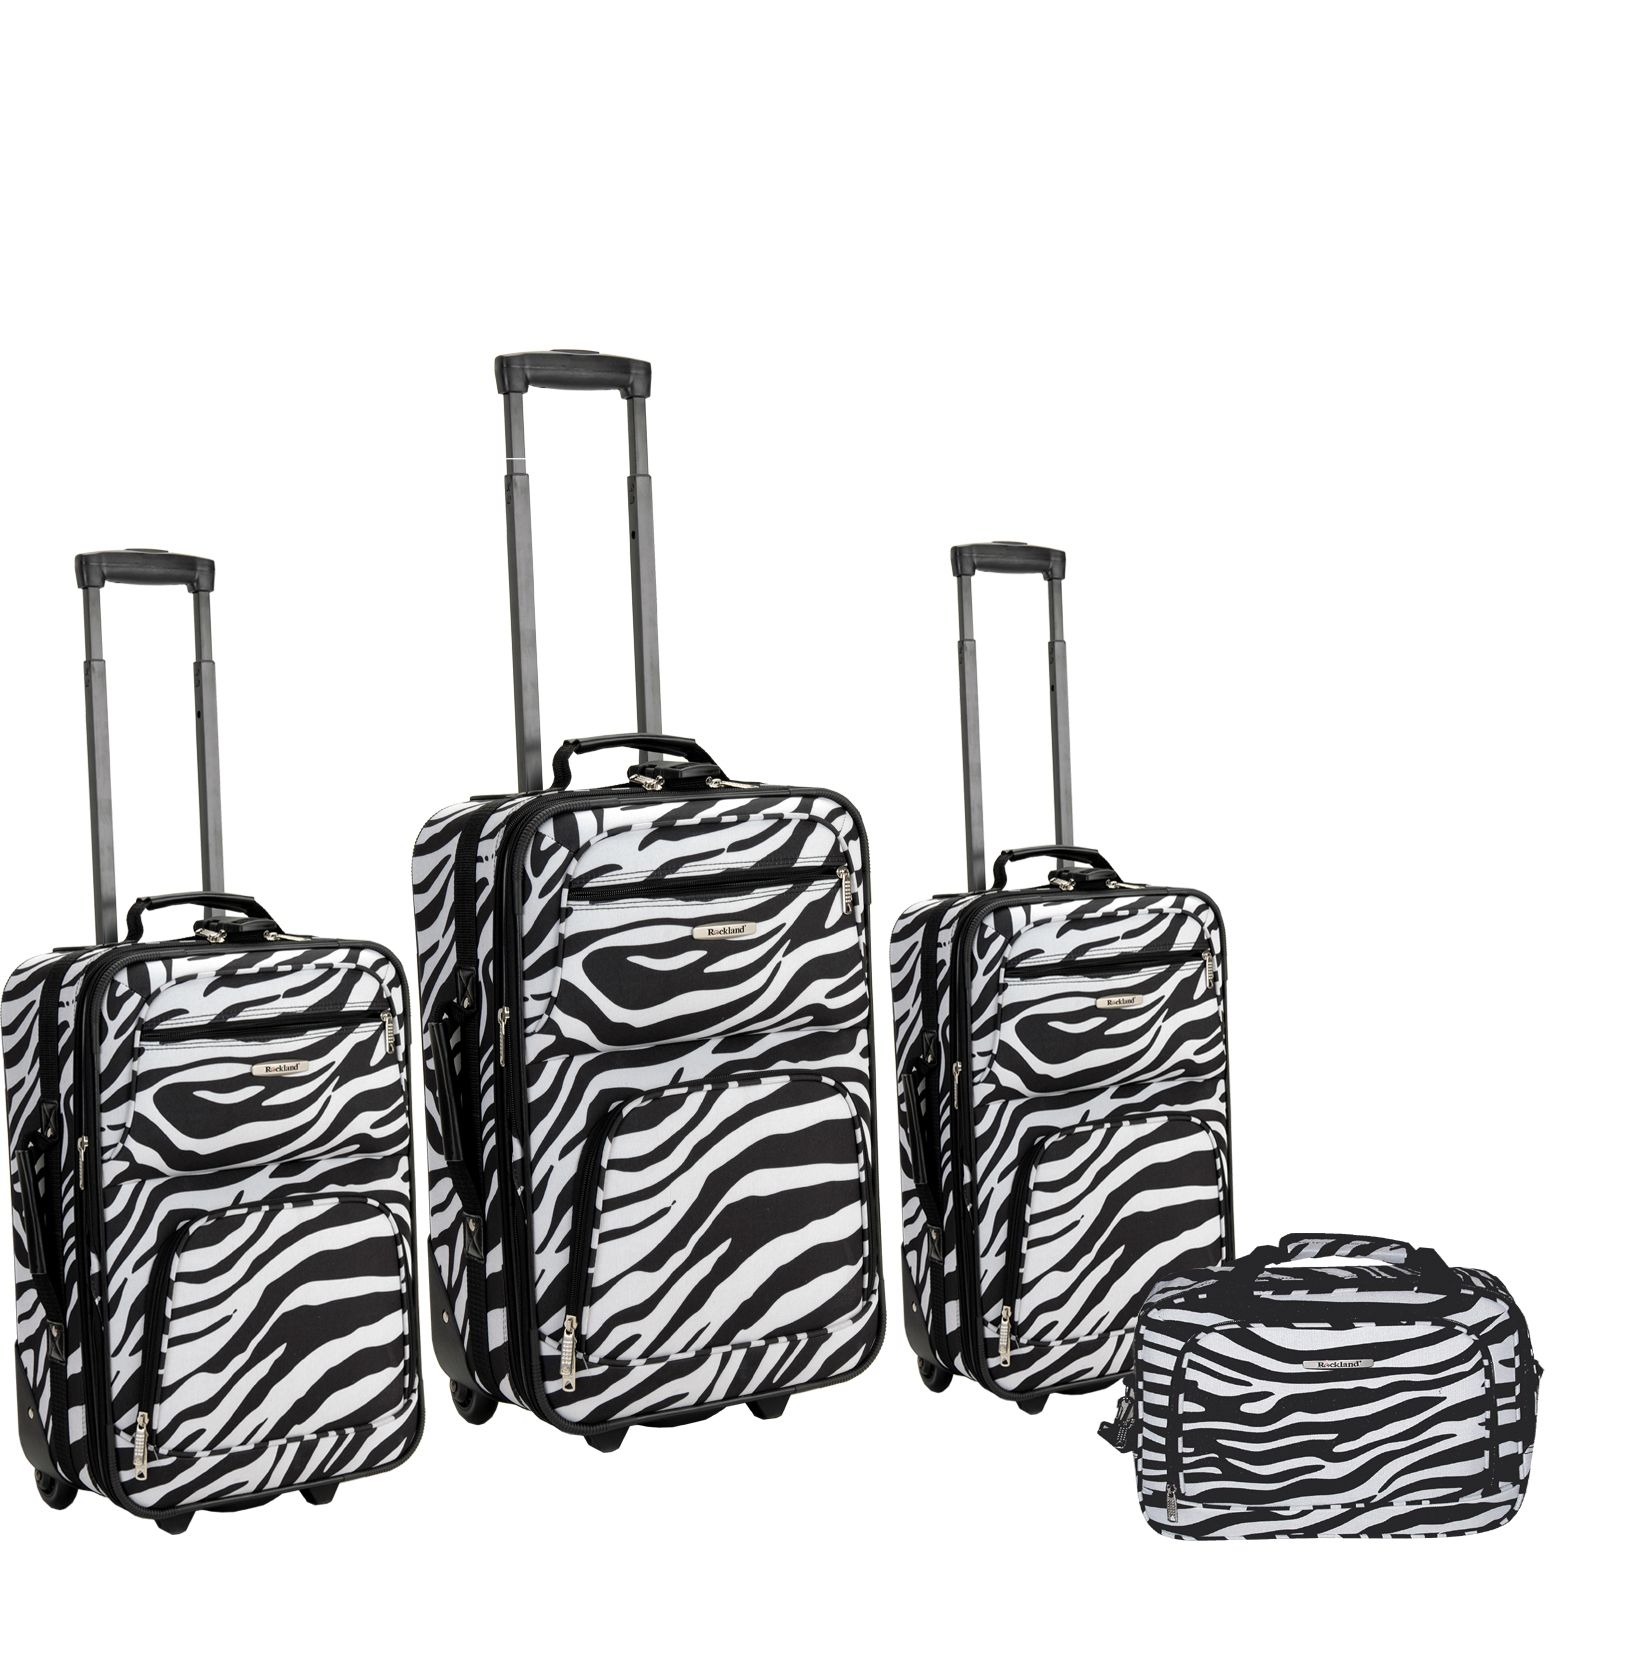 FOX LUGGAGE Rockland Fox Luggage Zebra Print 4 Pc Luggage Set